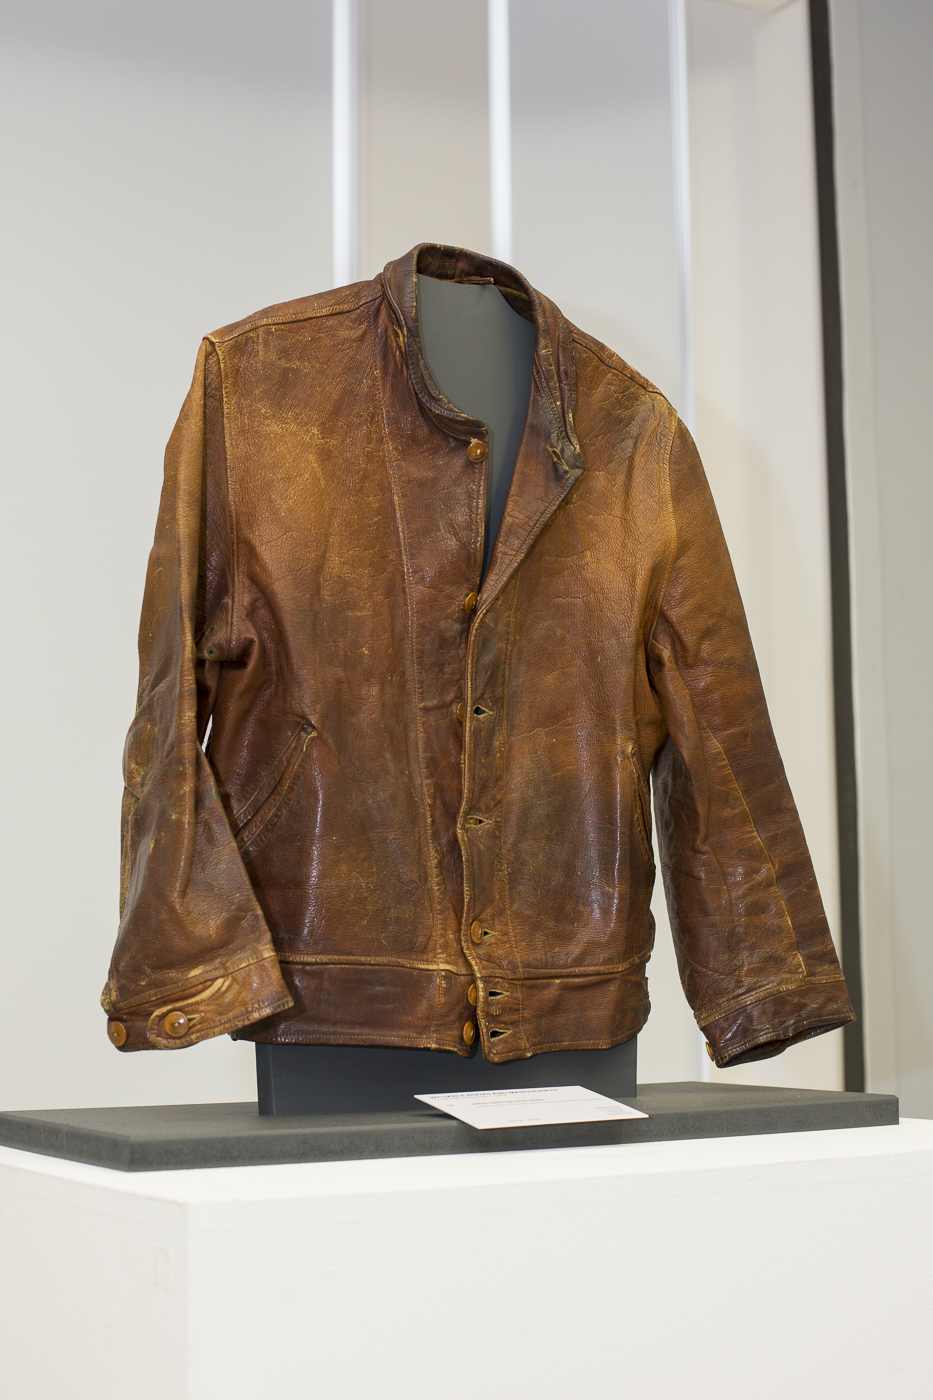 Levi S Buys Albert Einstein S Cossack Jacket For 147k At Christie S Wwd